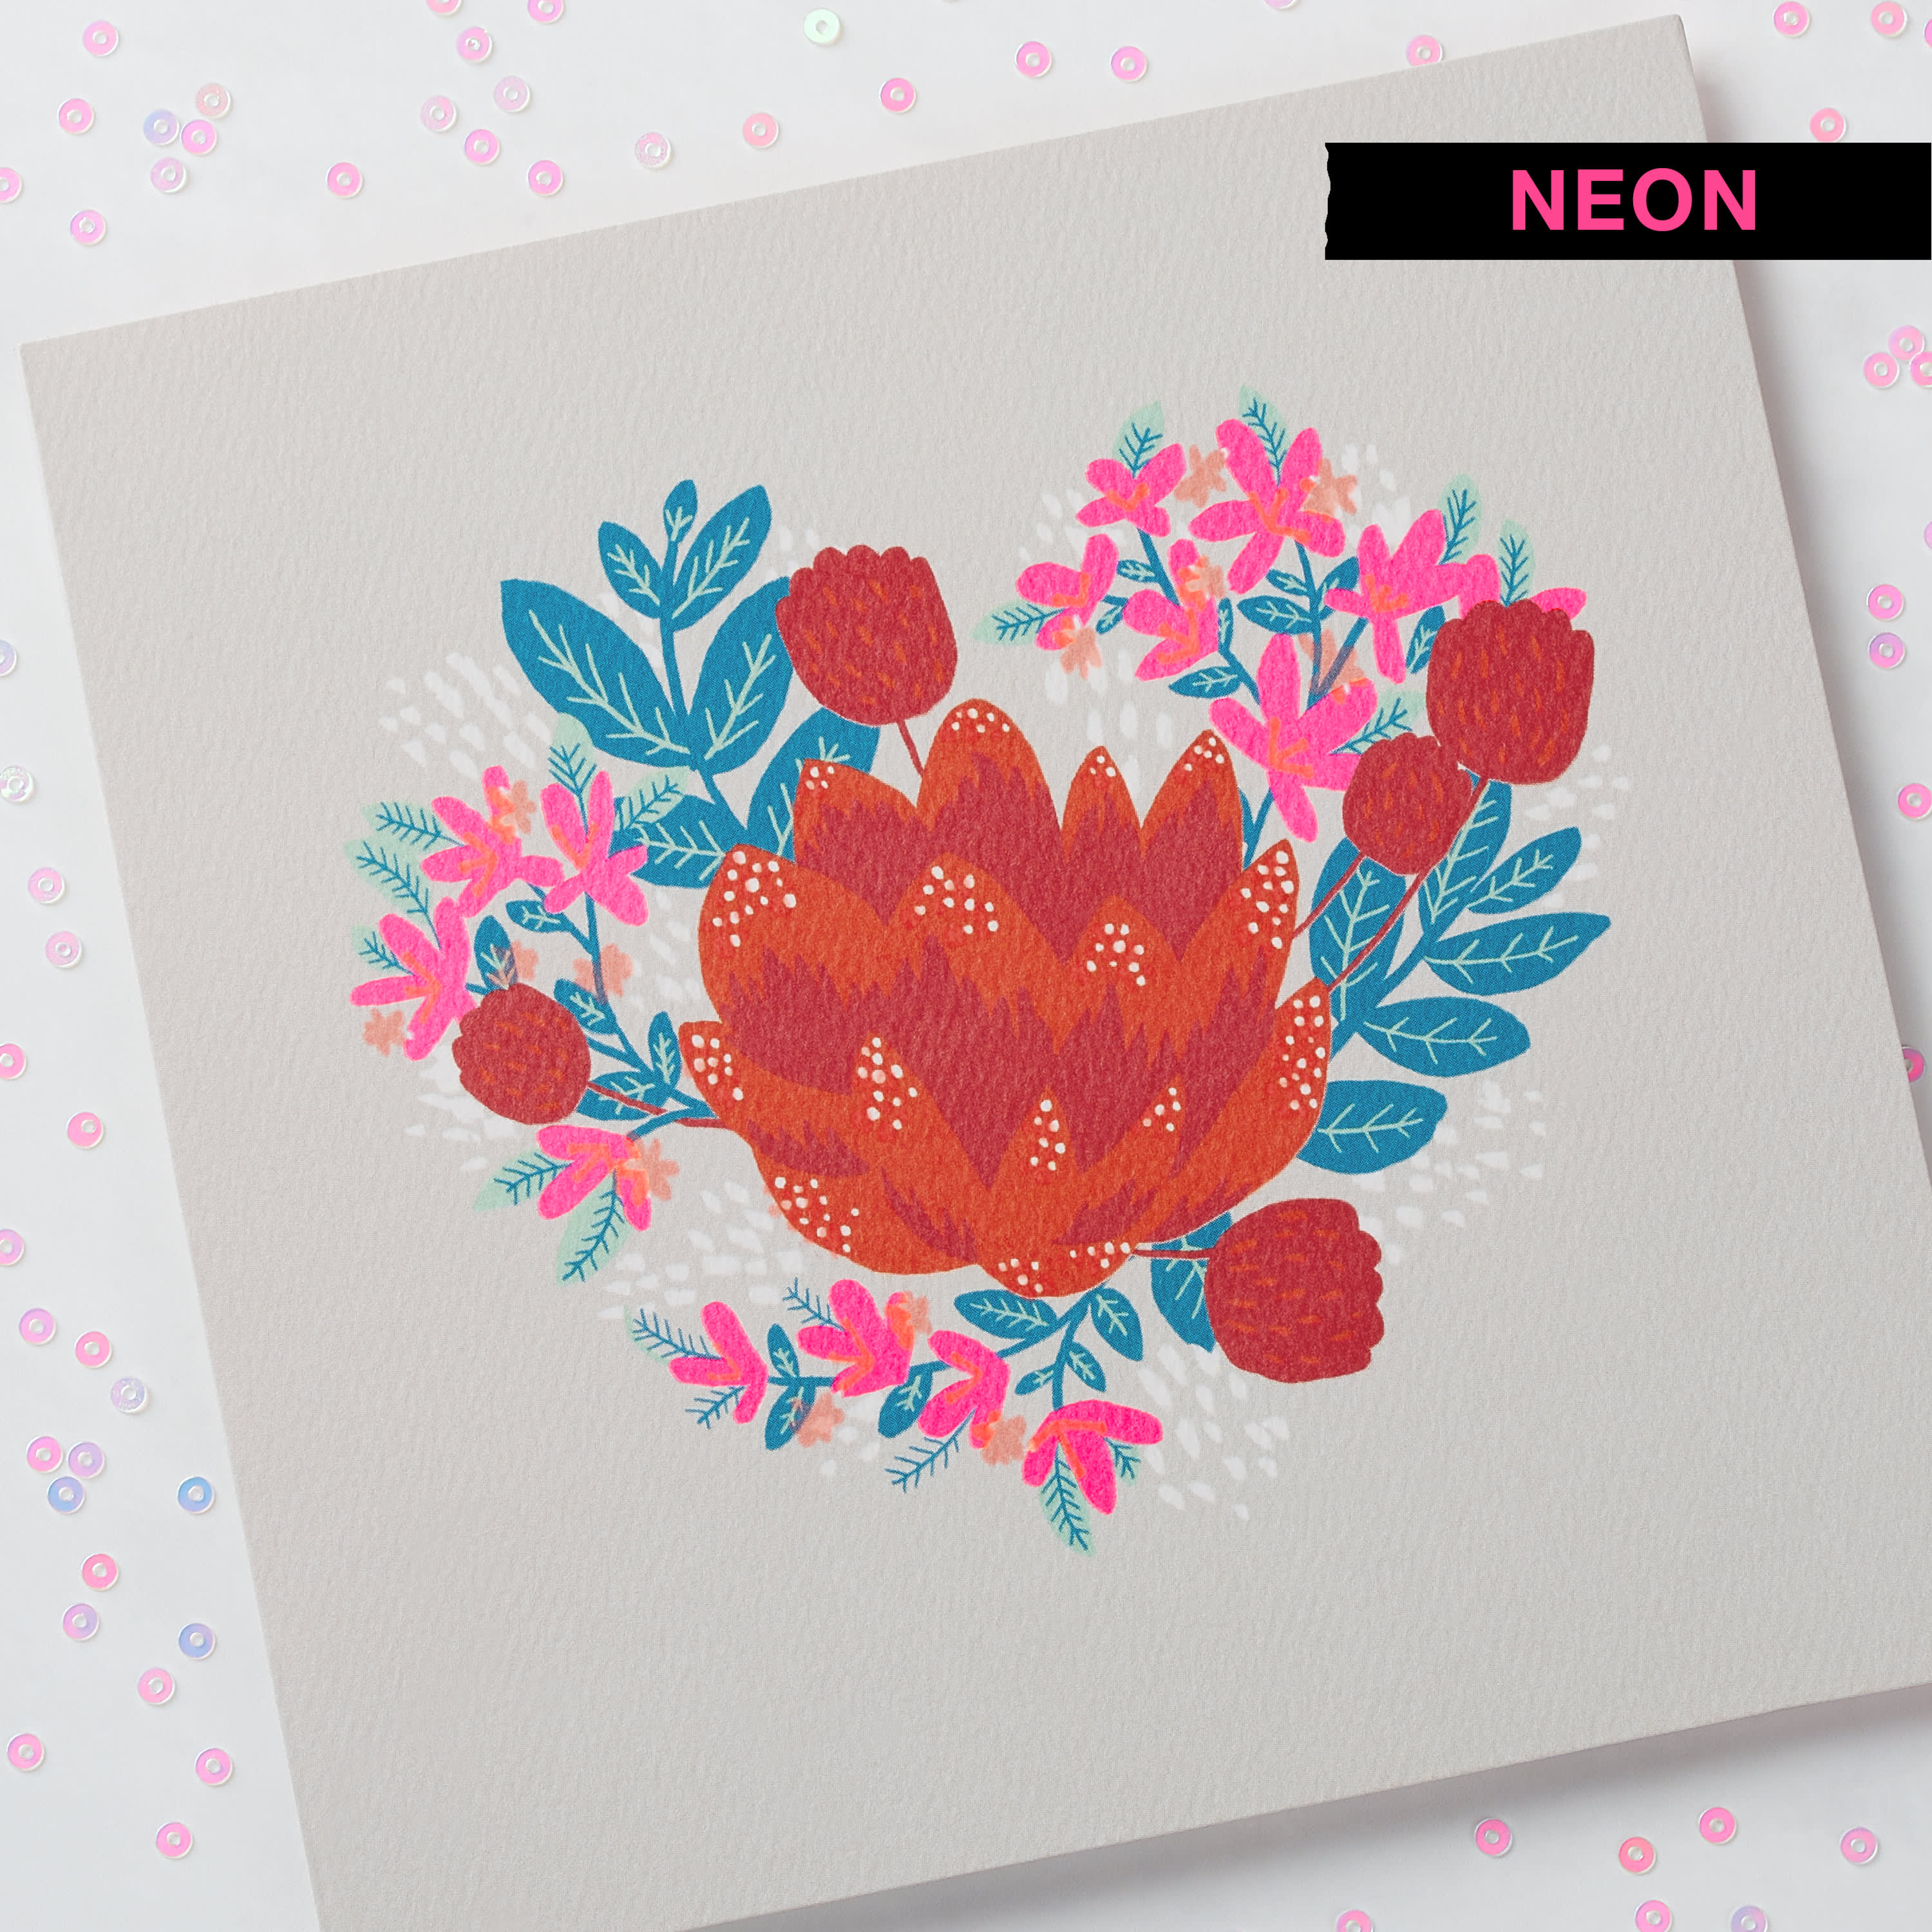 Floral Valentine's Day Card image